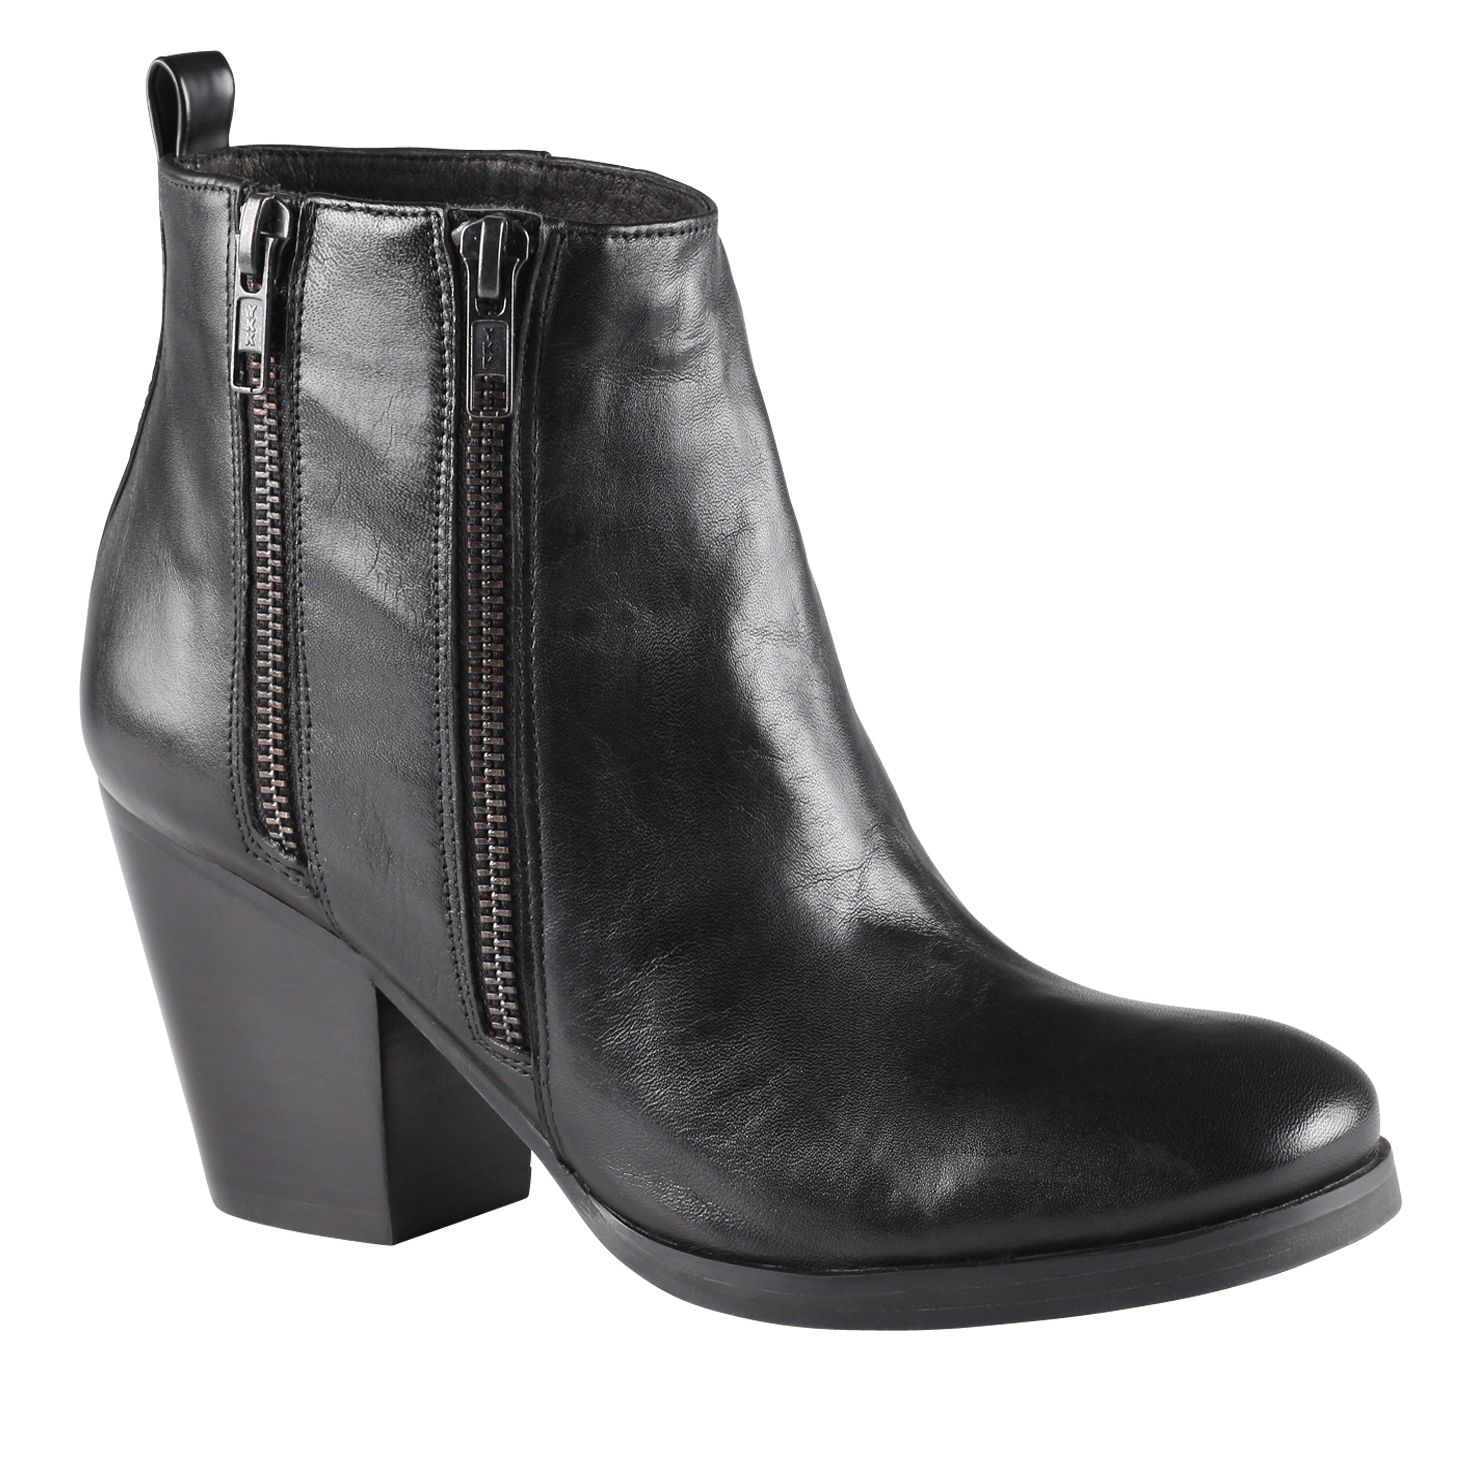 Fiera Ankle Boots